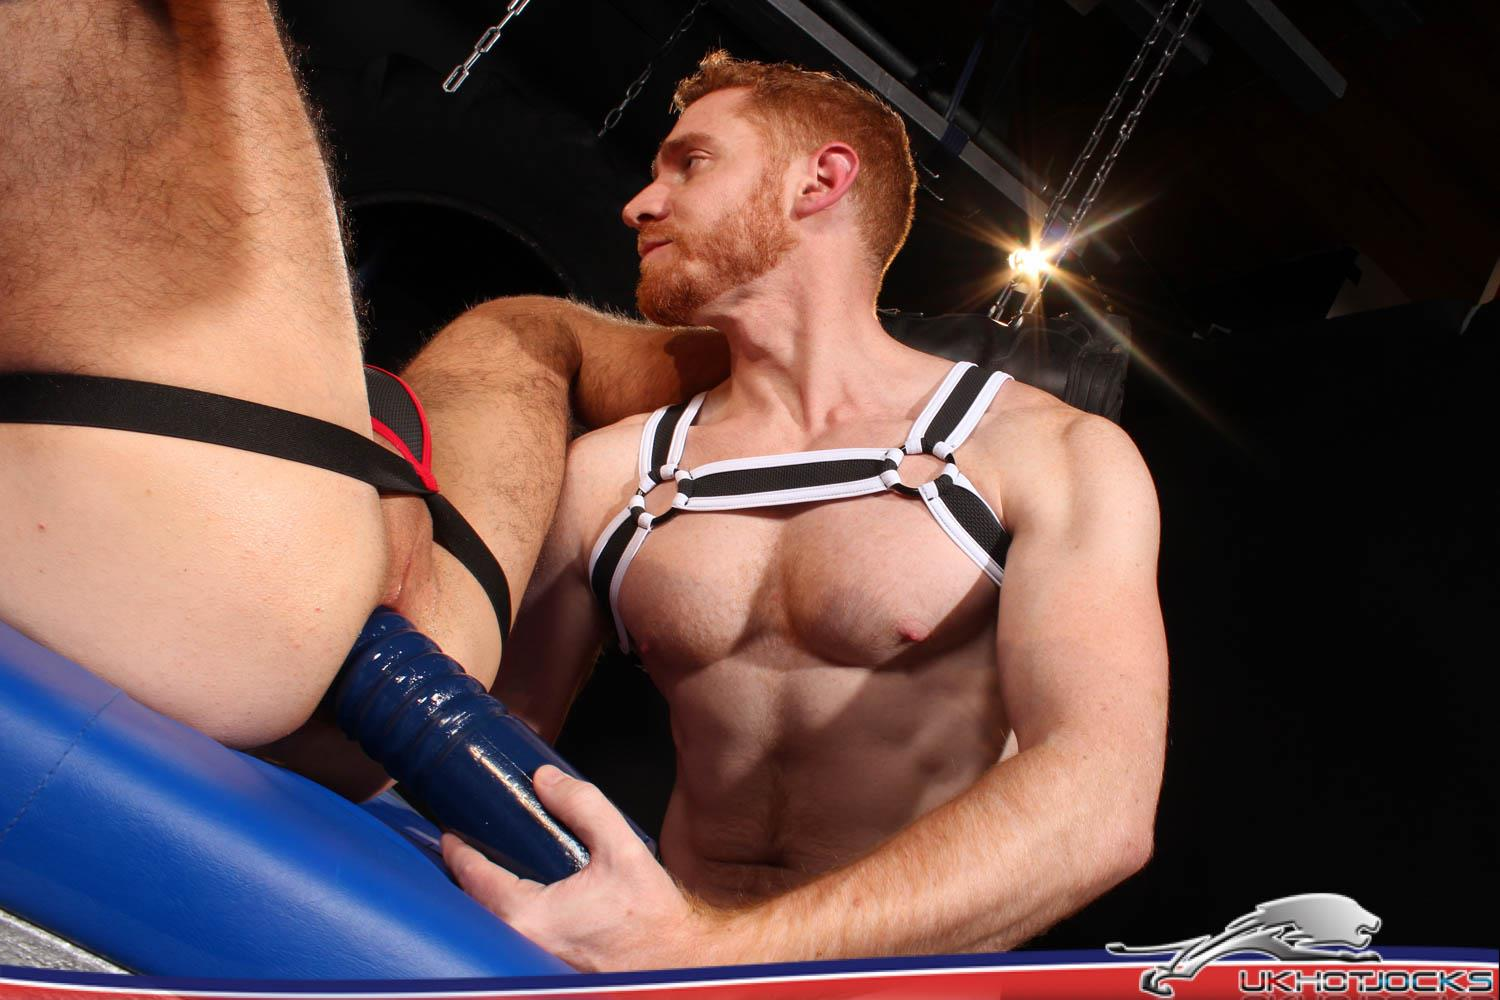 UK-Hot-Jocks-Gaston-Croupier-and-Leander-Big-Uncut-Ginger-Cock-27 Gaston Croupier Takes Leander's Big Uncut Cock And A Huge Dildo!